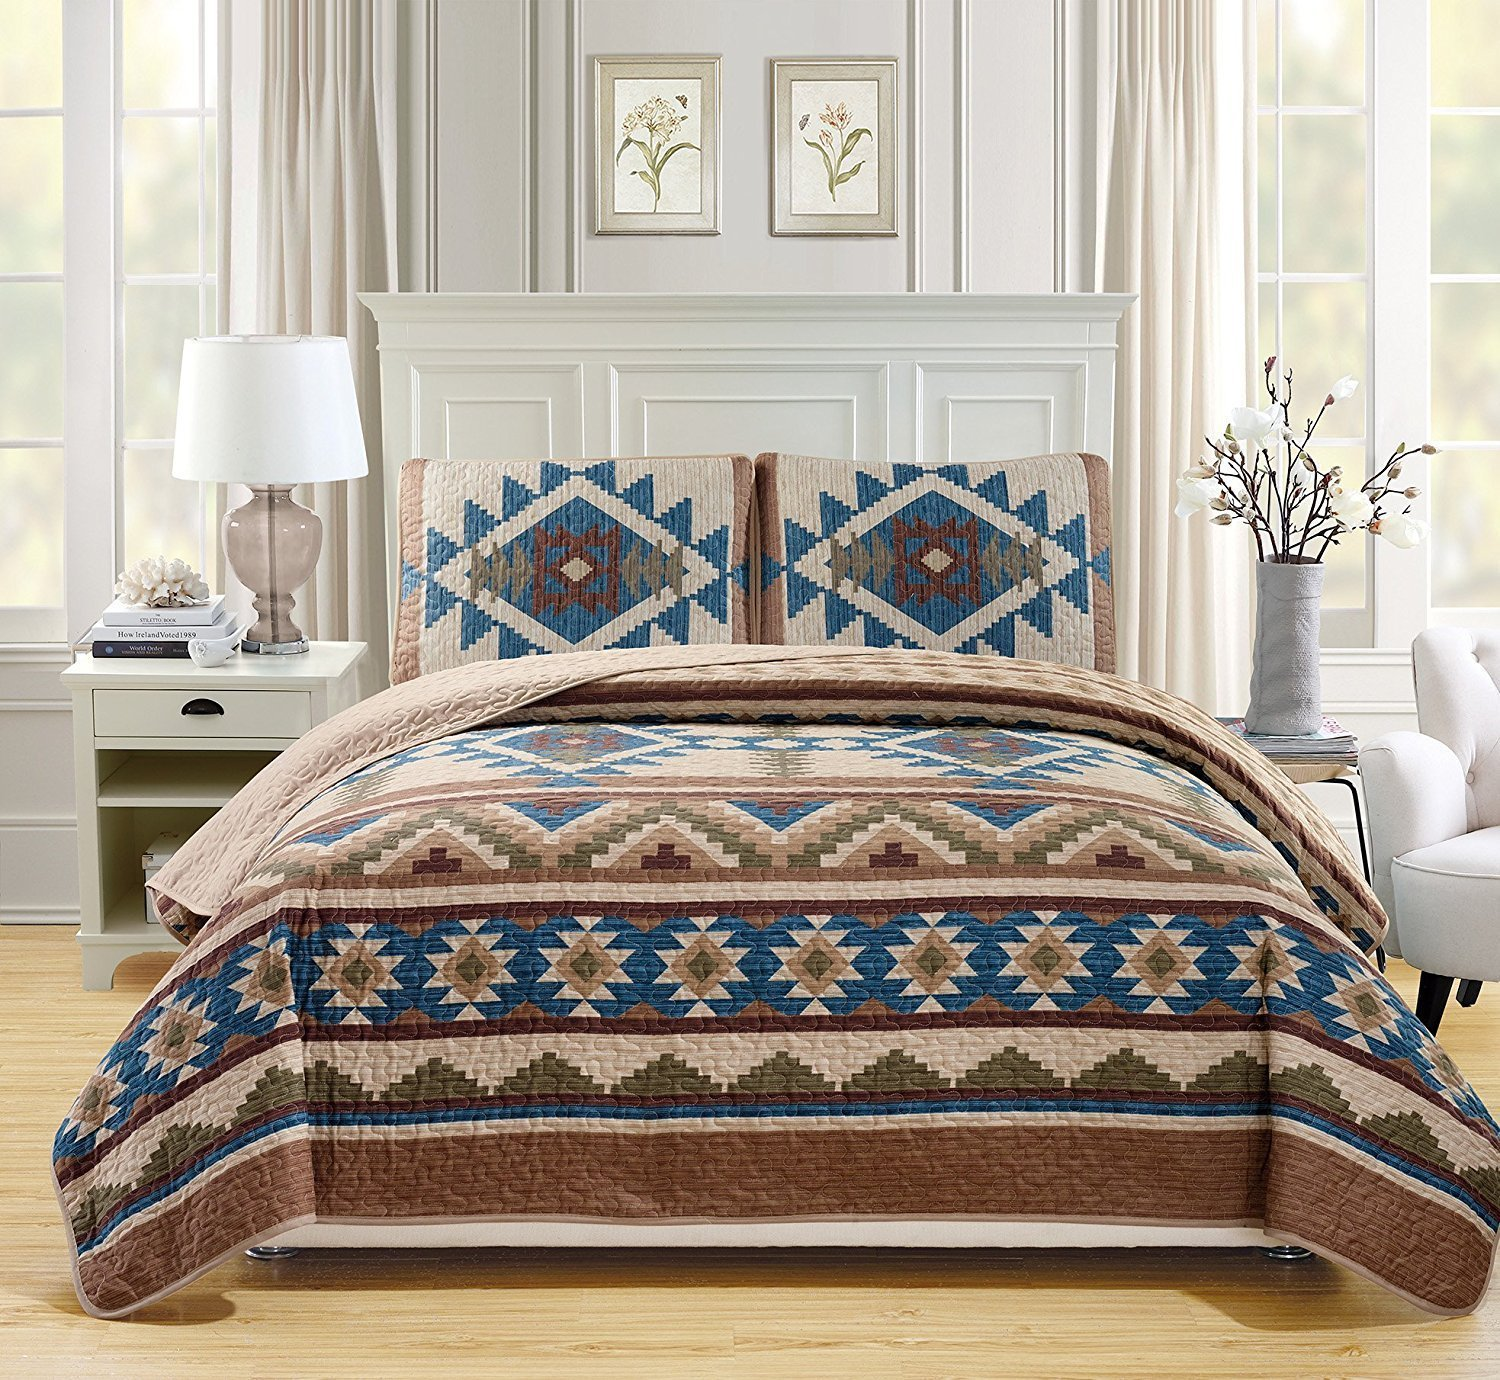 Western Southwestern Native American Tribal Navajo Design 3 Piece Multicolor Beige Taupe Brown Blue Green Oversize Bedspread Quilt Set Taupe (Queen)